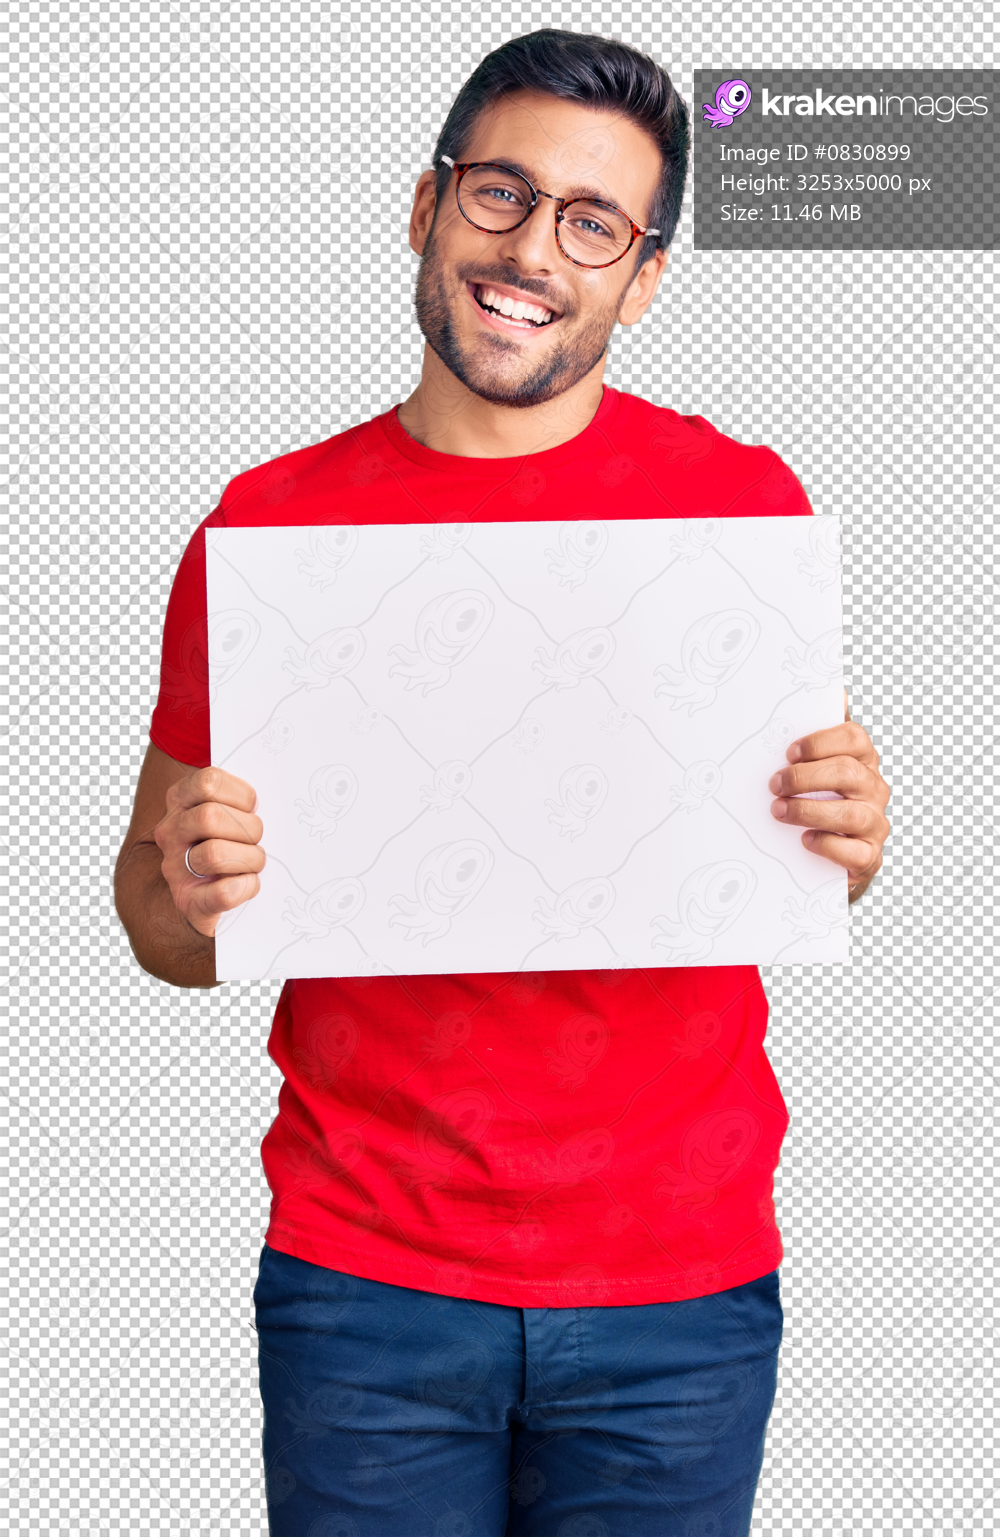 Young hispanic man holding blank empty banner looking positive and happy standing and smiling with a confident smile showing teeth